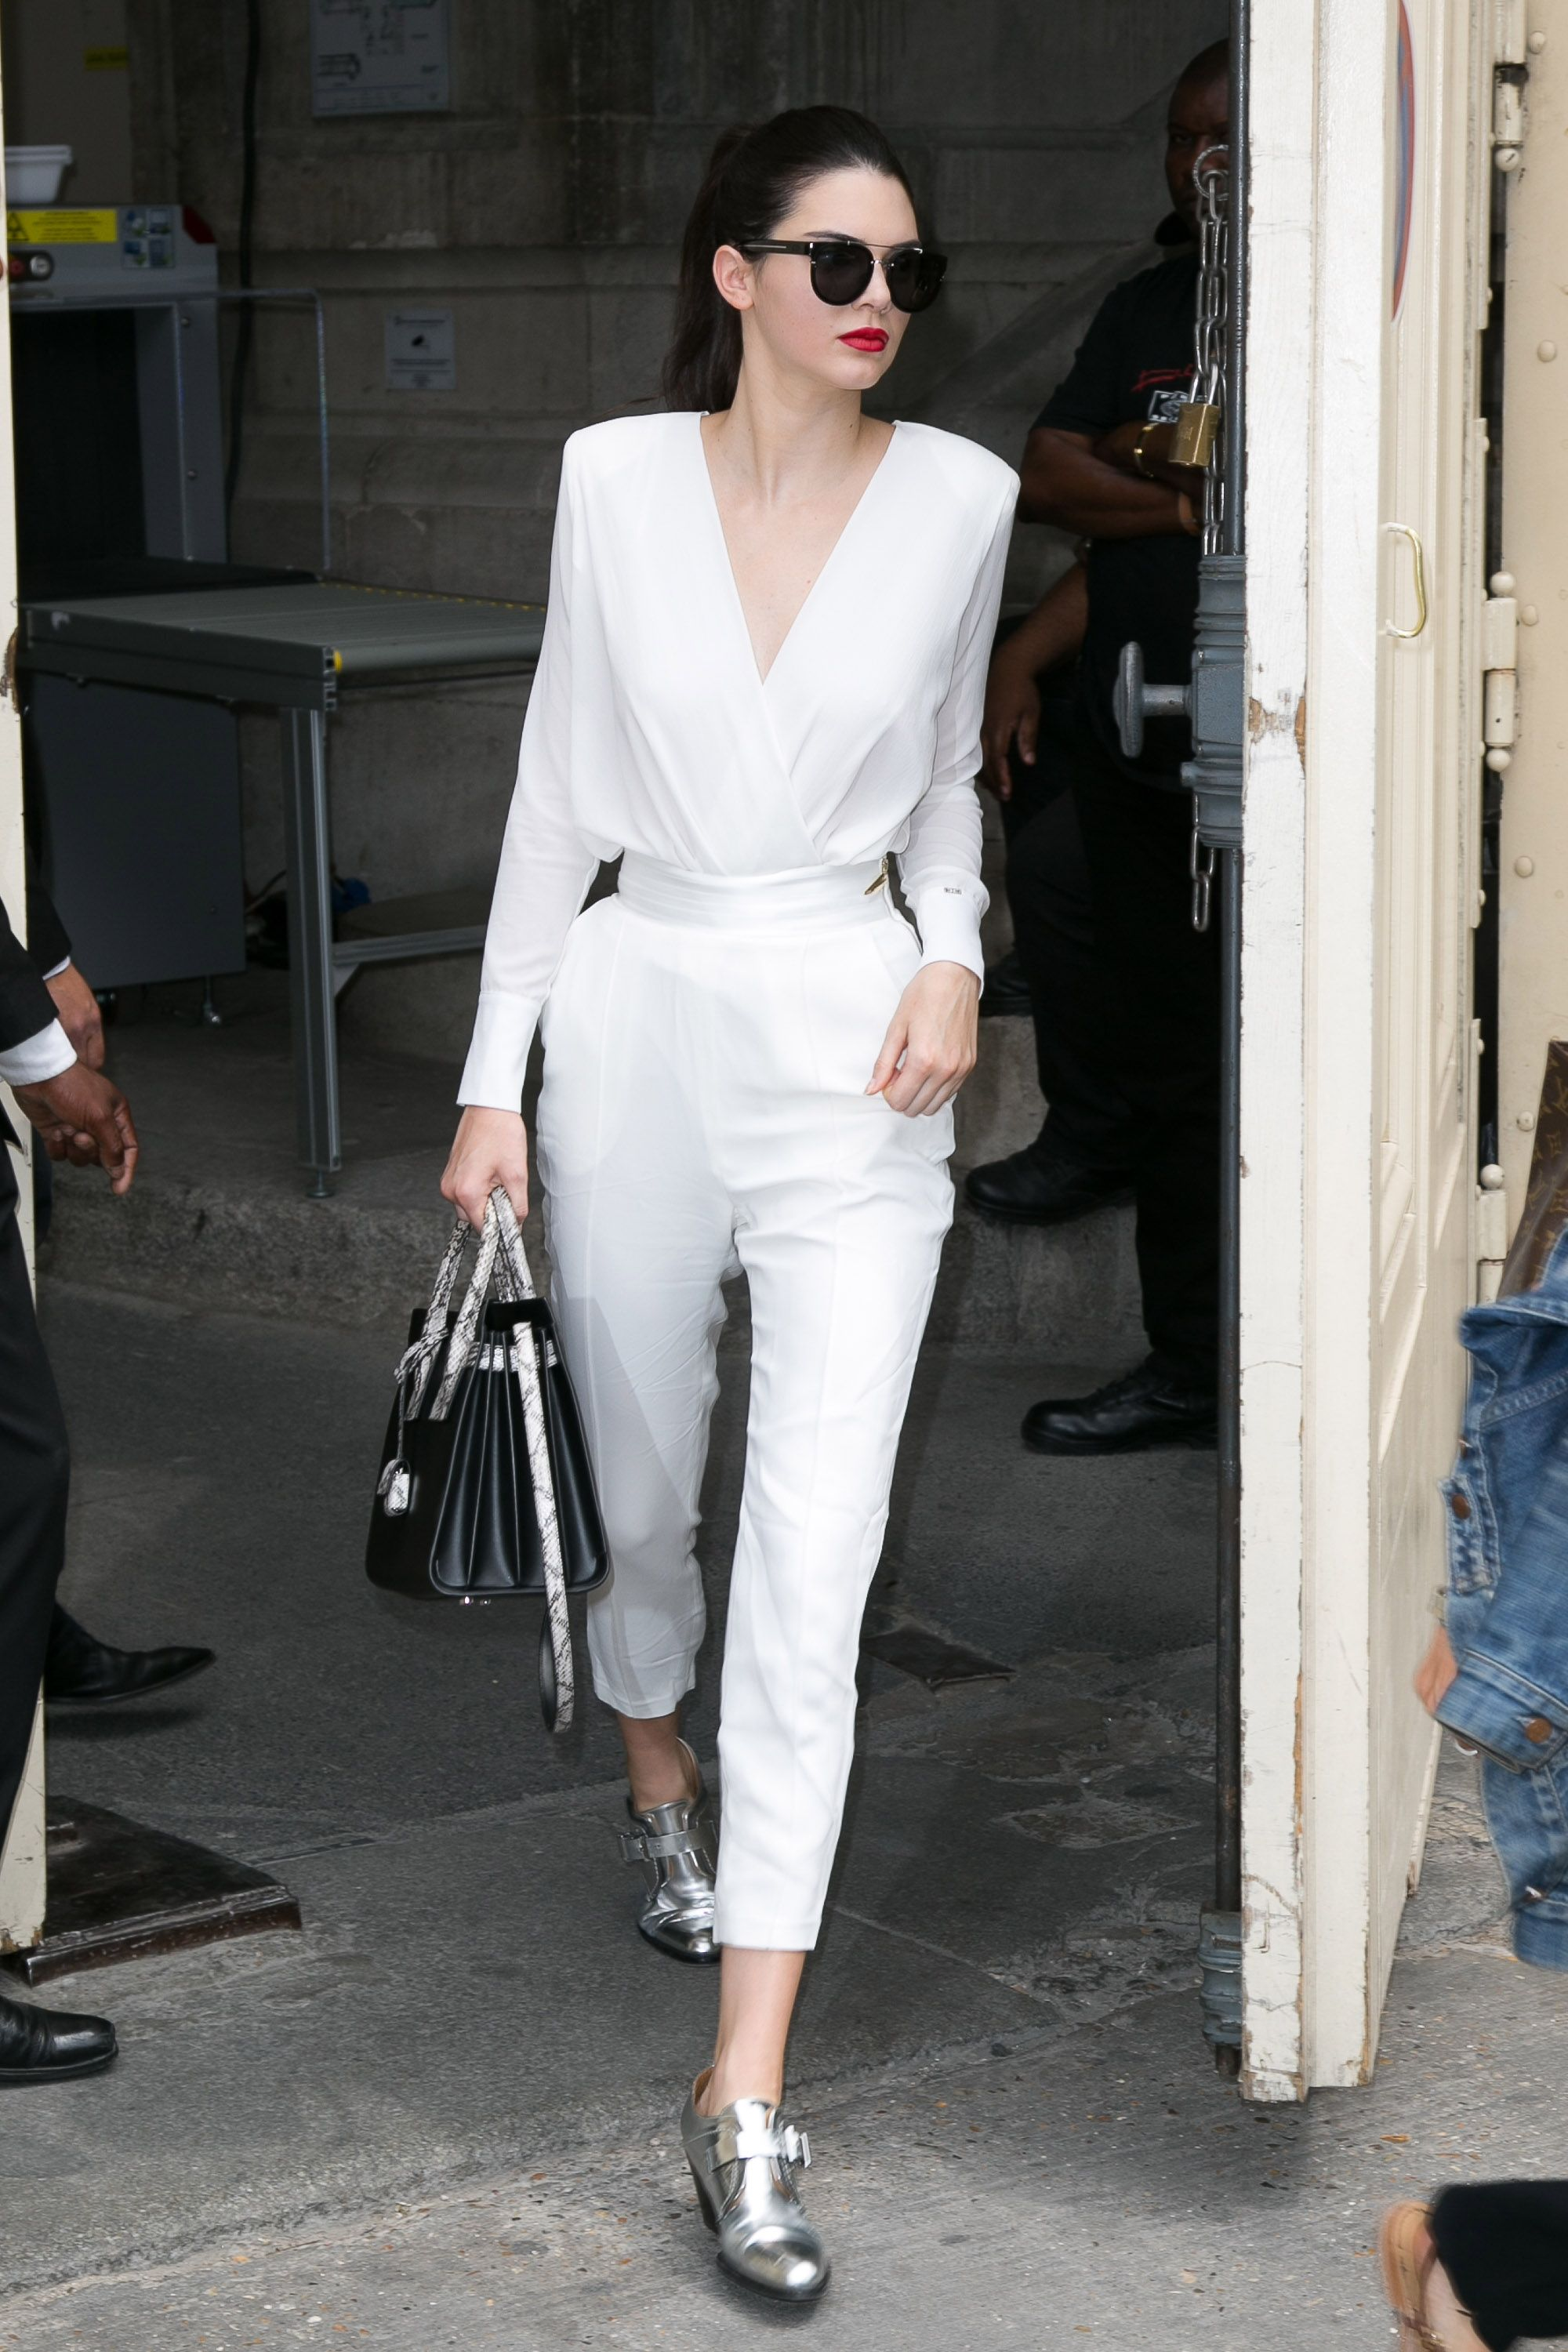 ca1cae60a4f3b4 ... Does Anything But Subtly Hide Her Bralette. Kendall Jenner in Paris  wearing a white blouse and trousers. See more of her best street style  looks here.